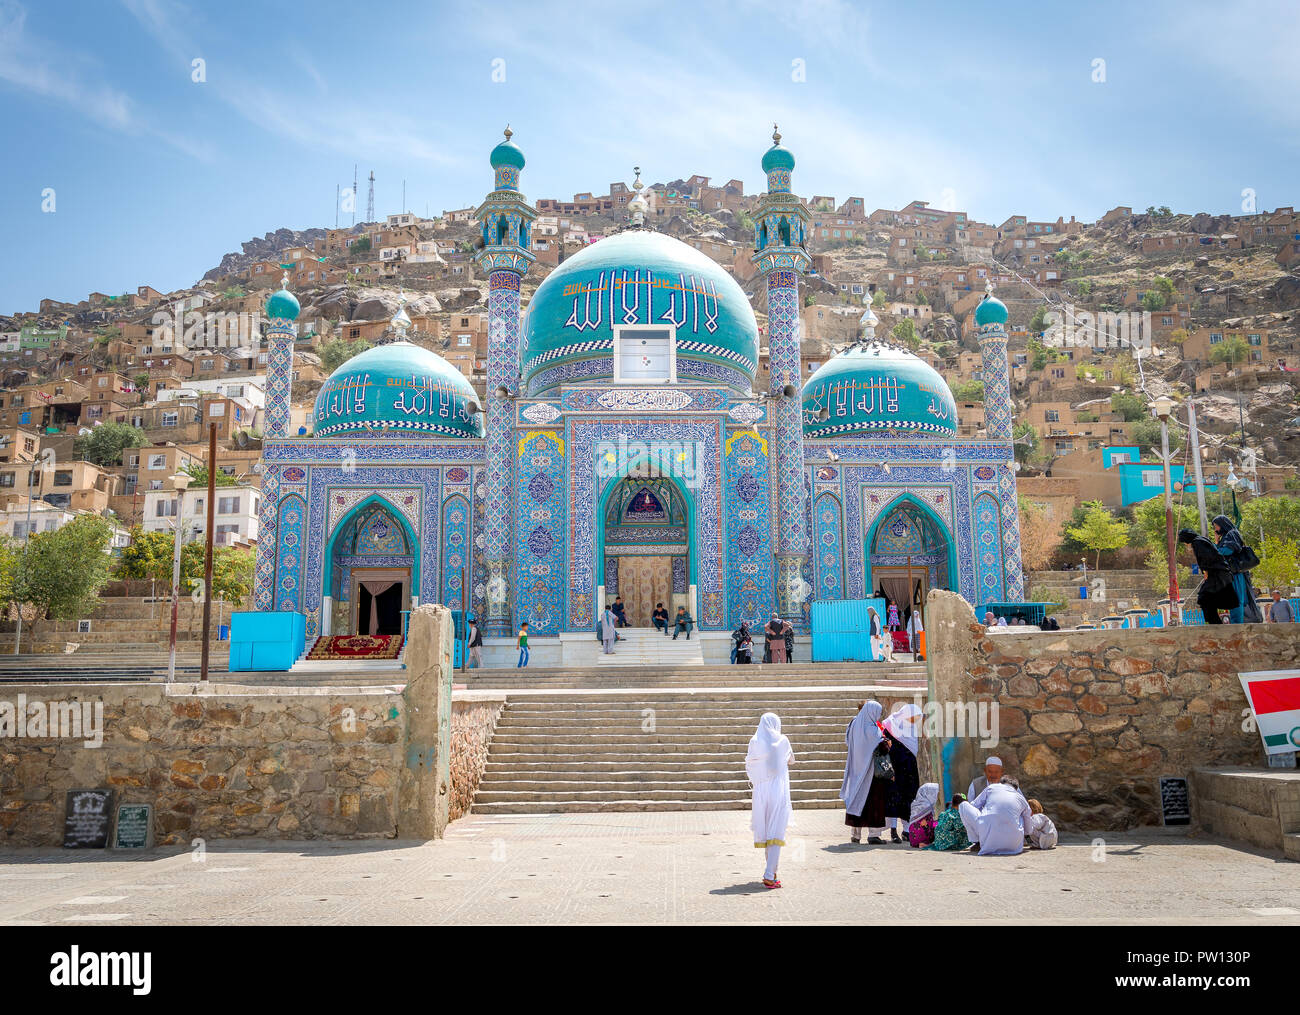 Muslim girl and women at mosque in Kabul Afghanistan city scape skyline, capital Kabul hills and mountains with houses and buildings - Stock Image